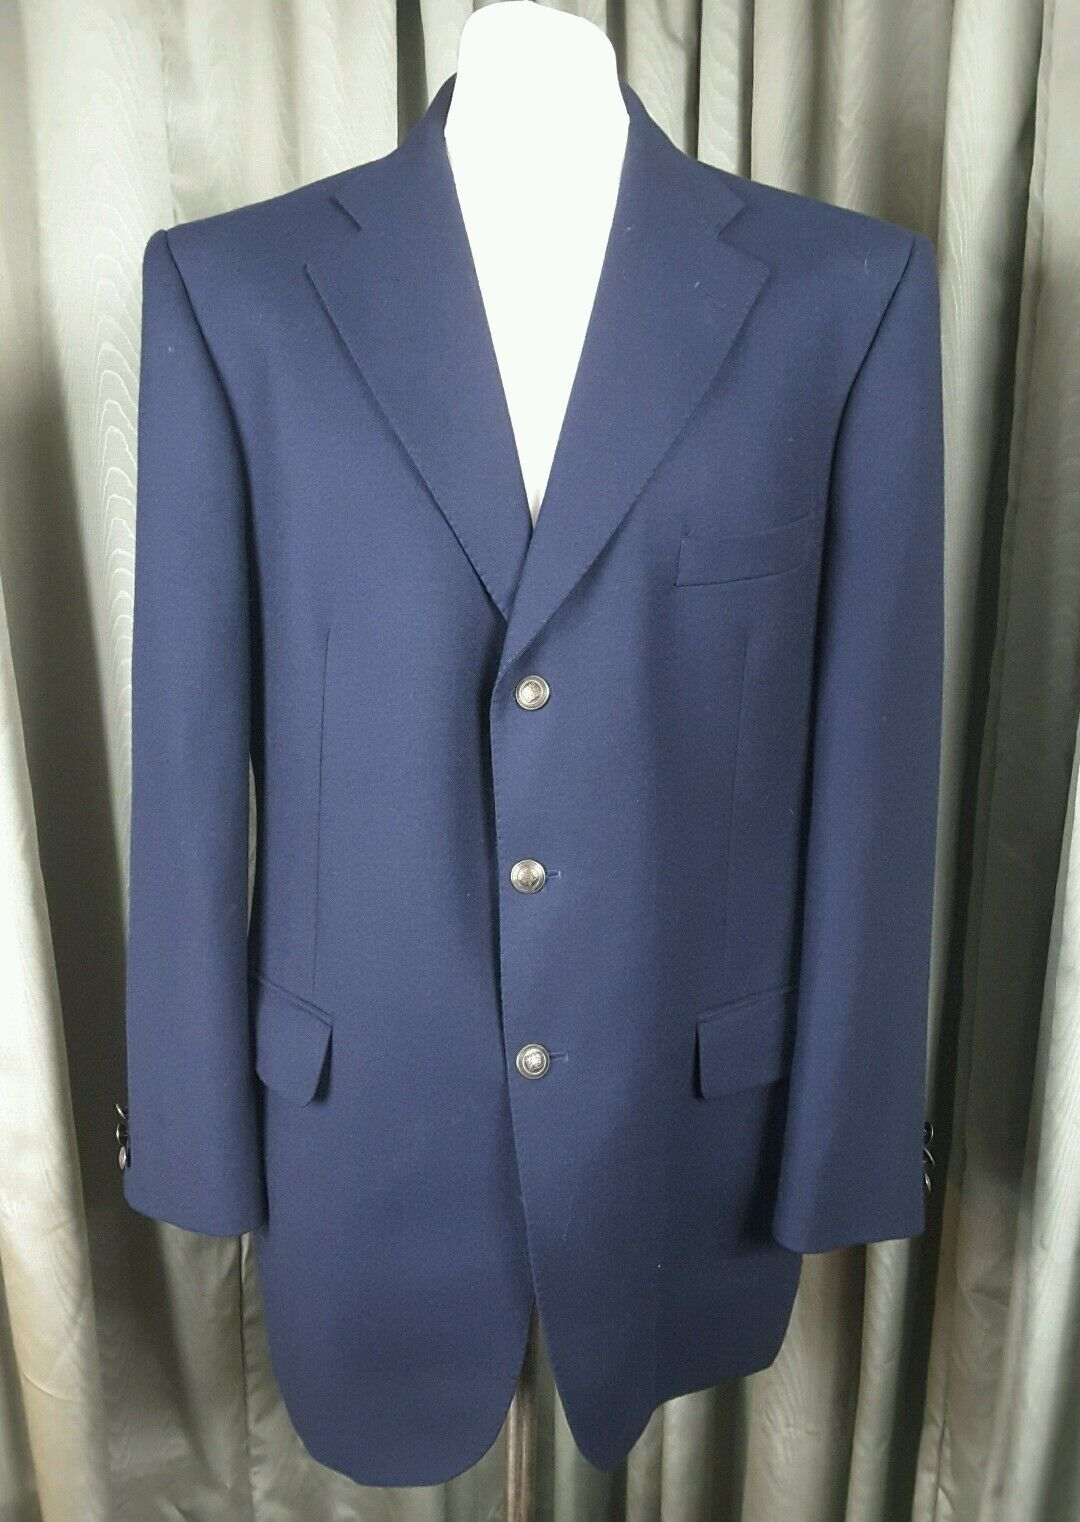 Marks & Spencer Wool/Cashmere Navy Gold Buttons Blazer 44M EXCELLENT CONDITION